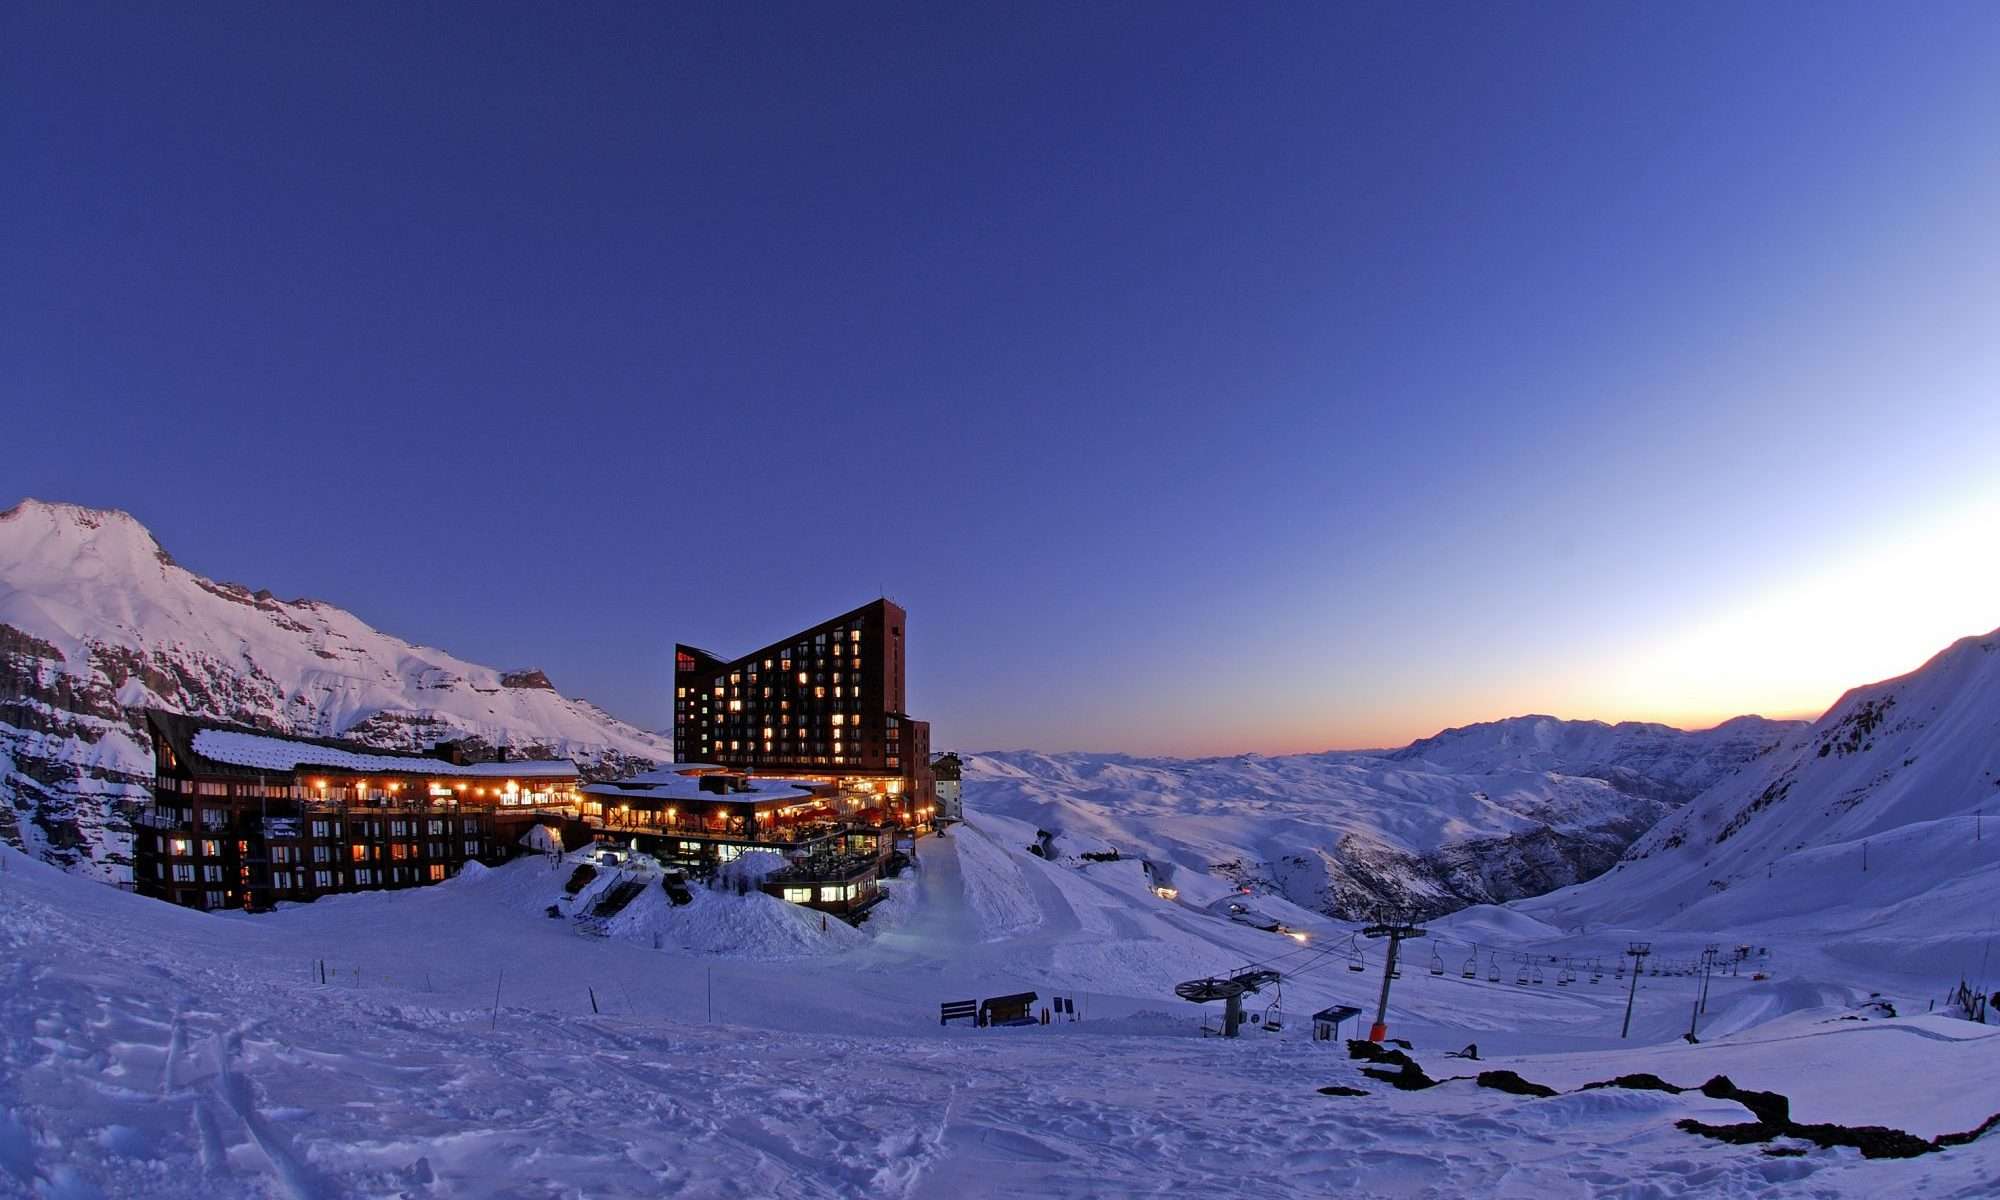 A Day Trip to Valle Nevado from Santiago City. Photo: Valle Nevado on a beautiful night.